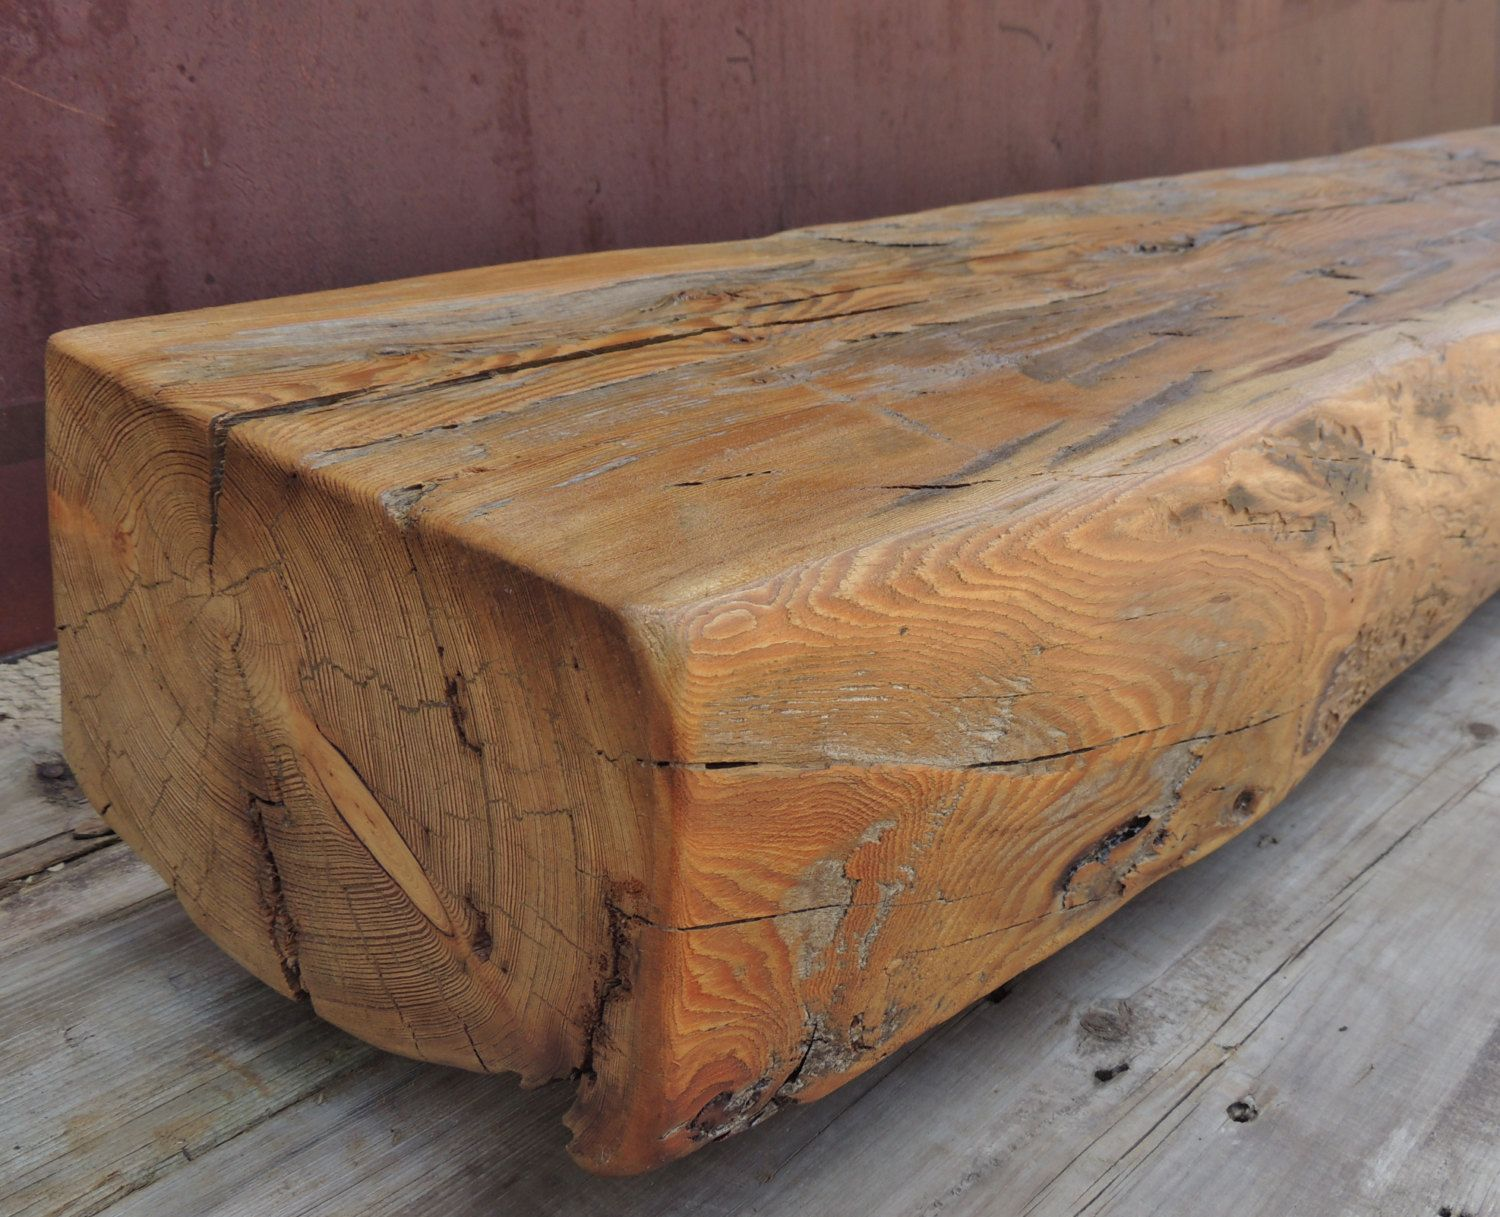 reclaimed wood fireplace mantel or mantle shelf 63 x 10 1 2 x 6 5